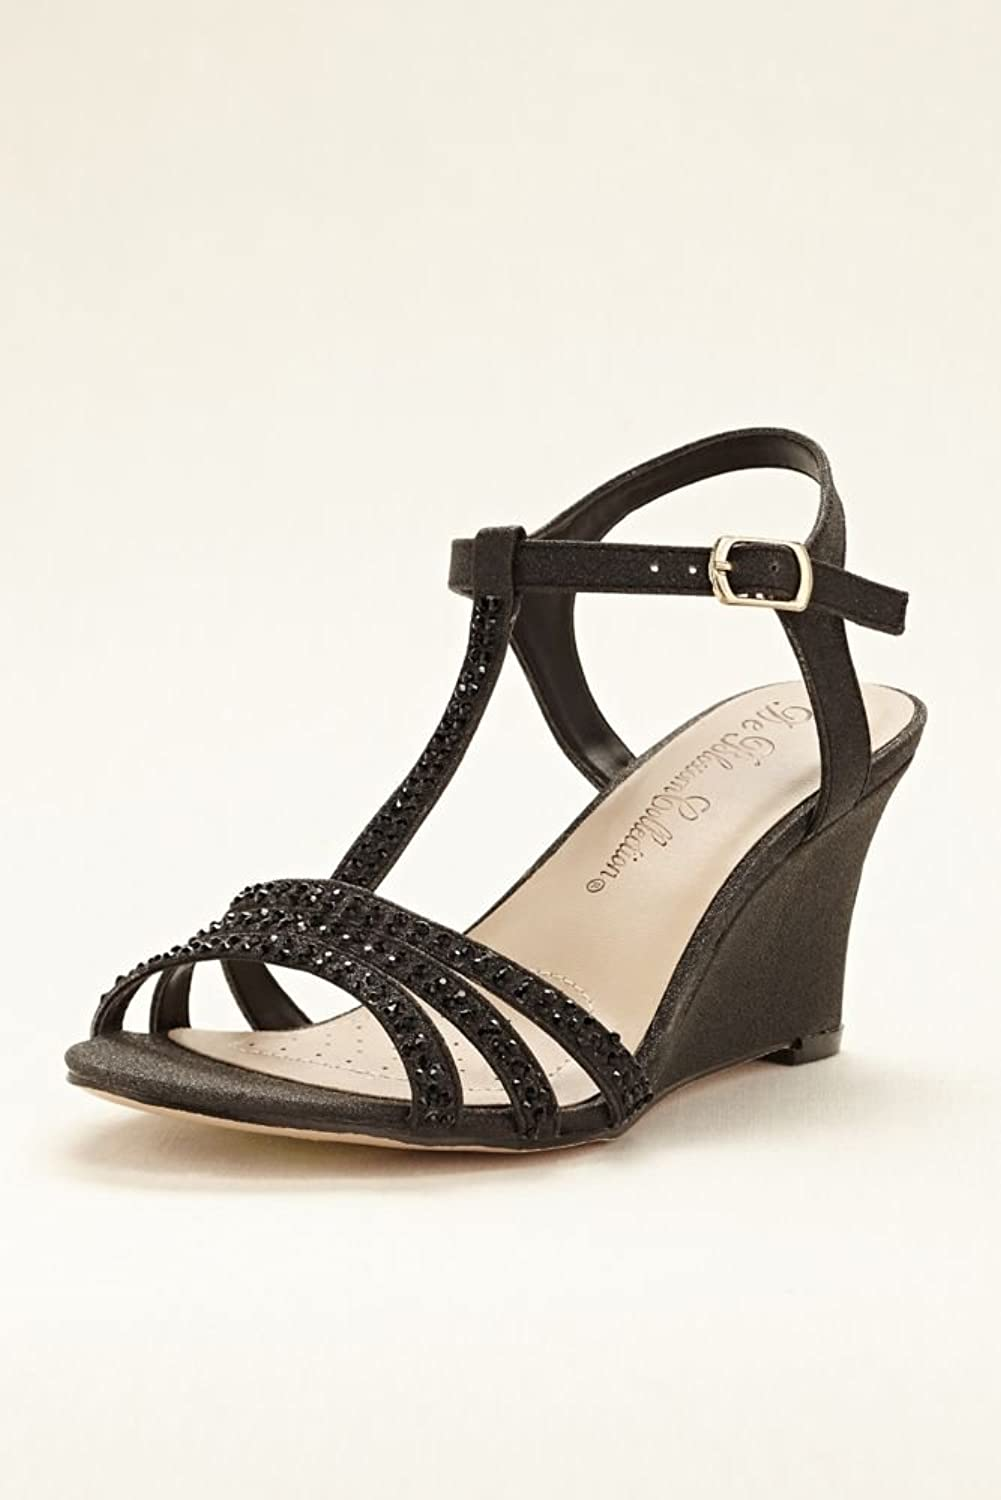 Glitter Wedge Shoes Shoes T-strap Wedge Sandal